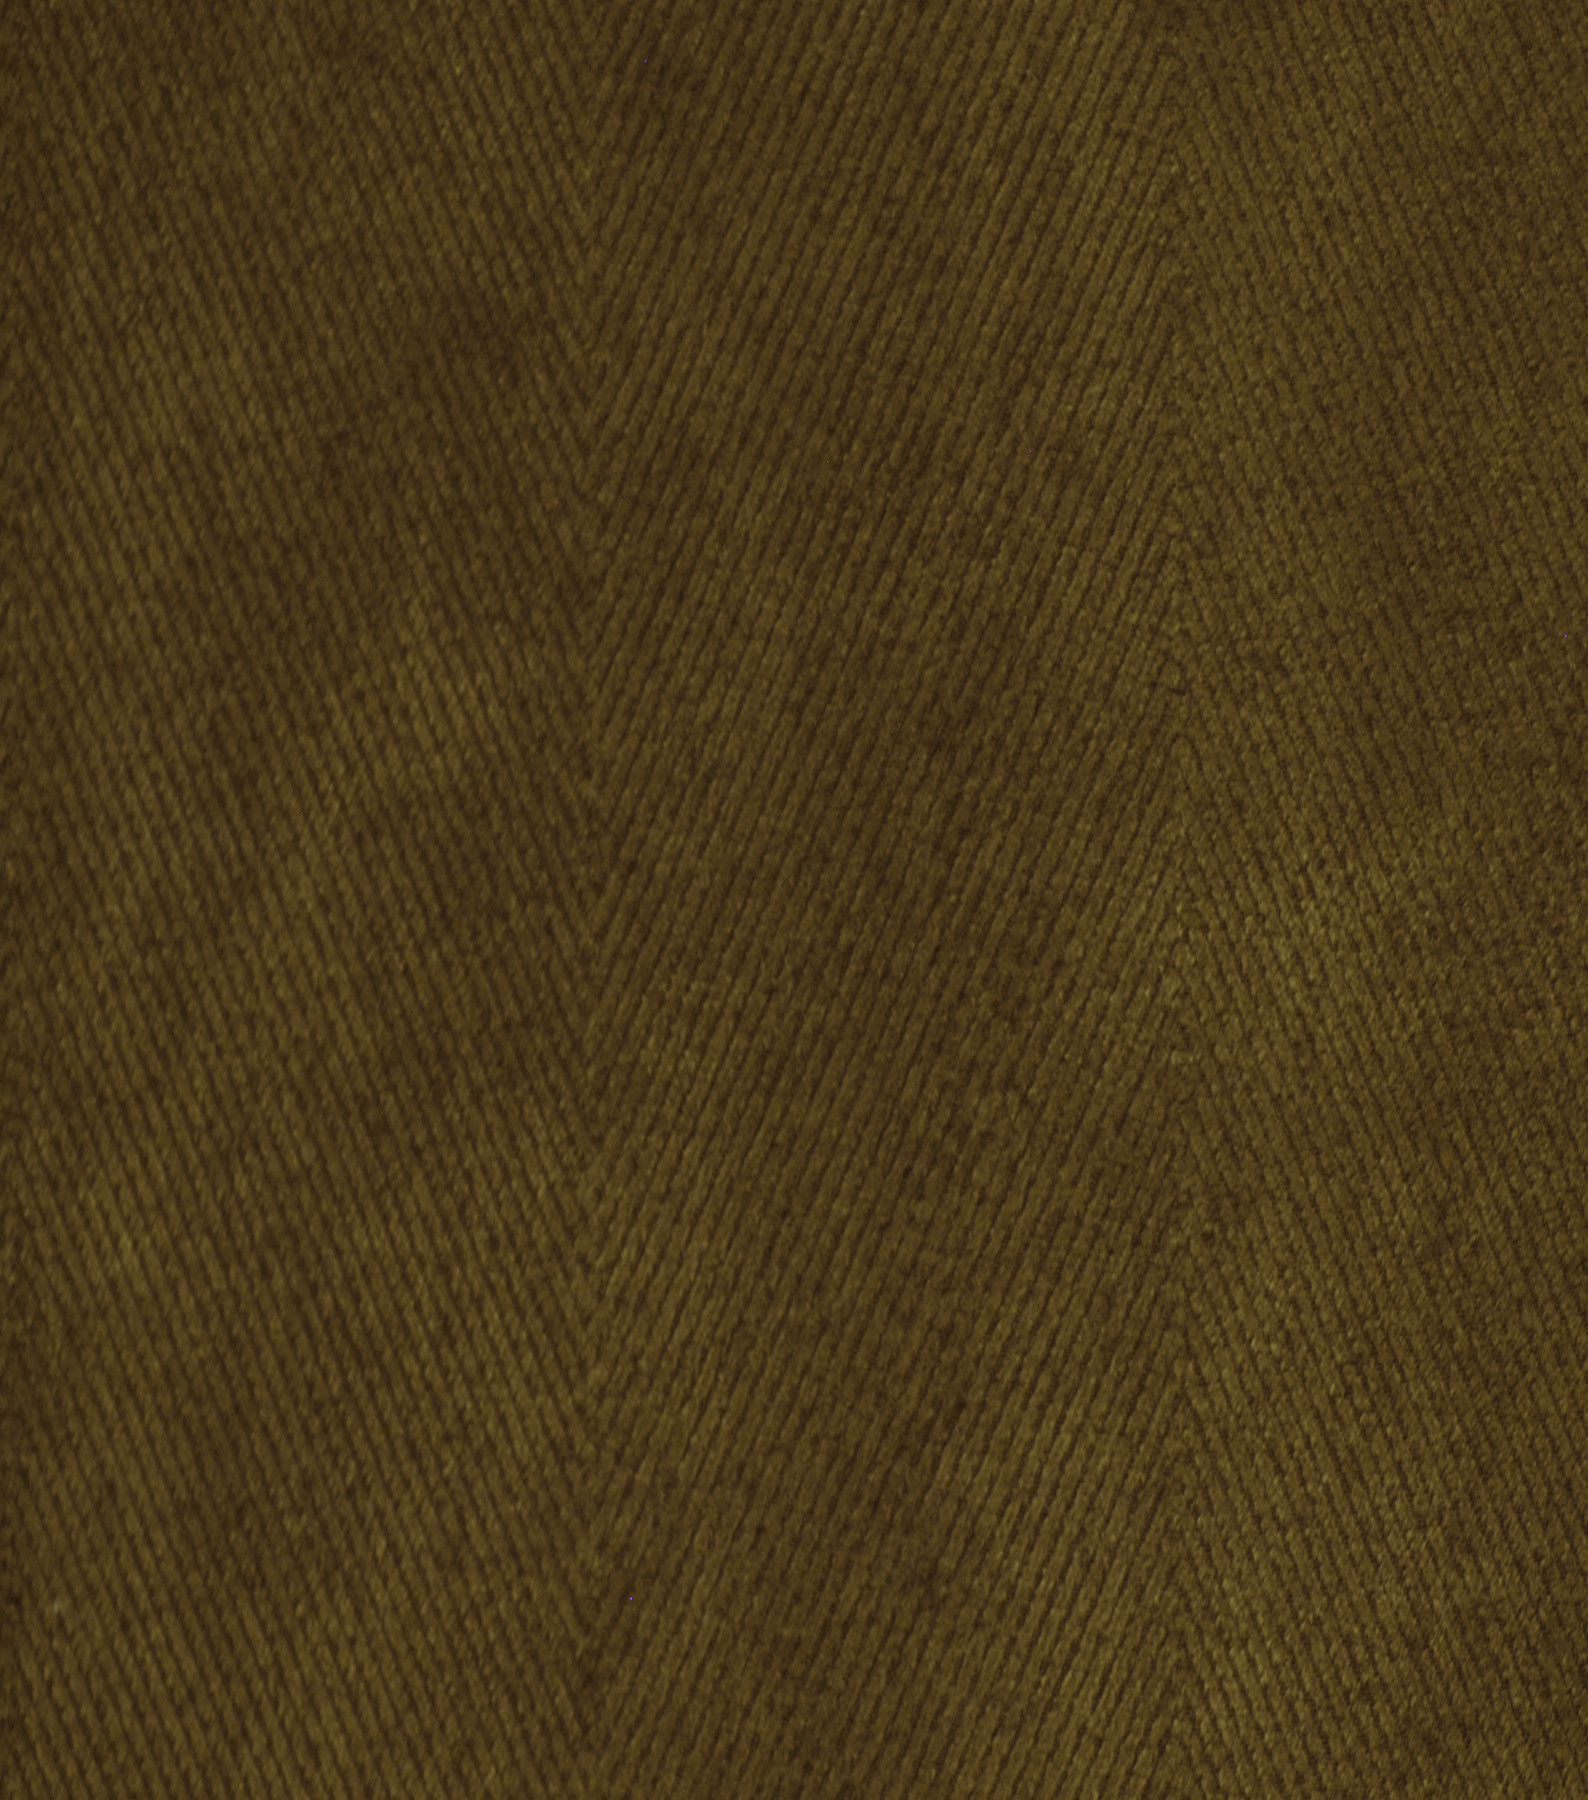 Home Decor 8\u0022x8\u0022 Fabric Swatch-Solid Fabric Signature Series Woodburn Bark